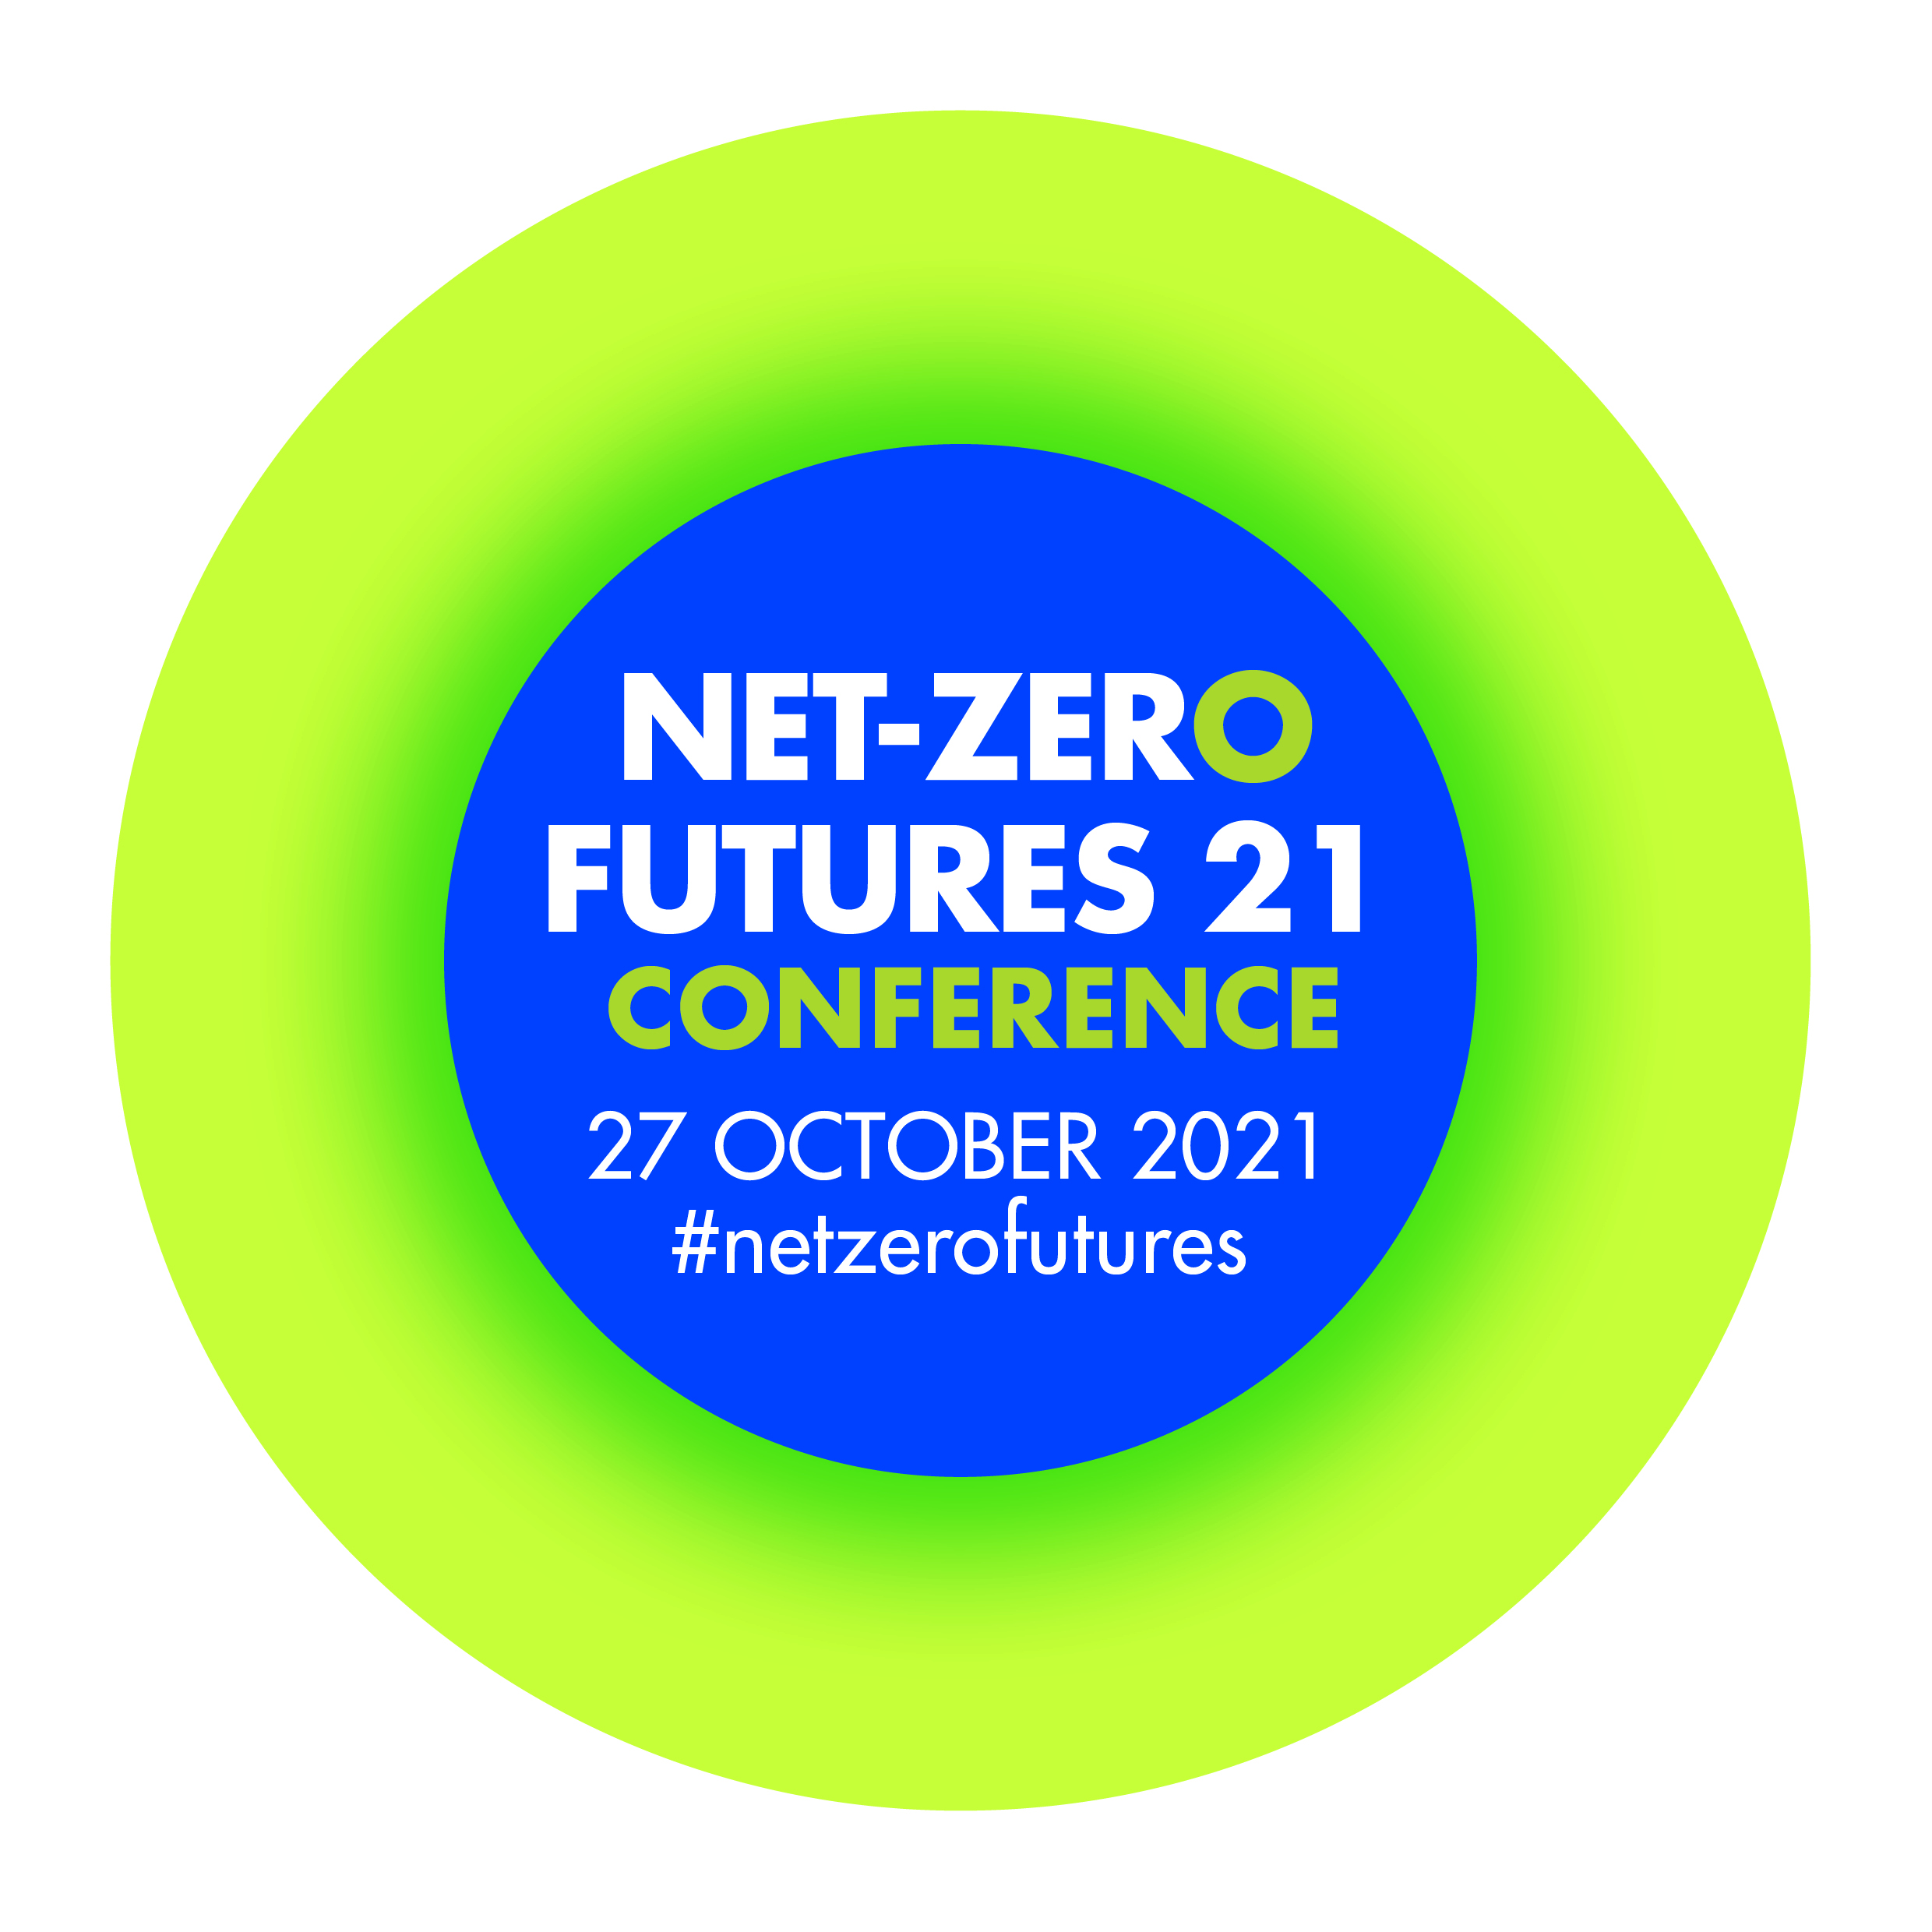 Net-Zero Futures conference: Weds 27th October 2021